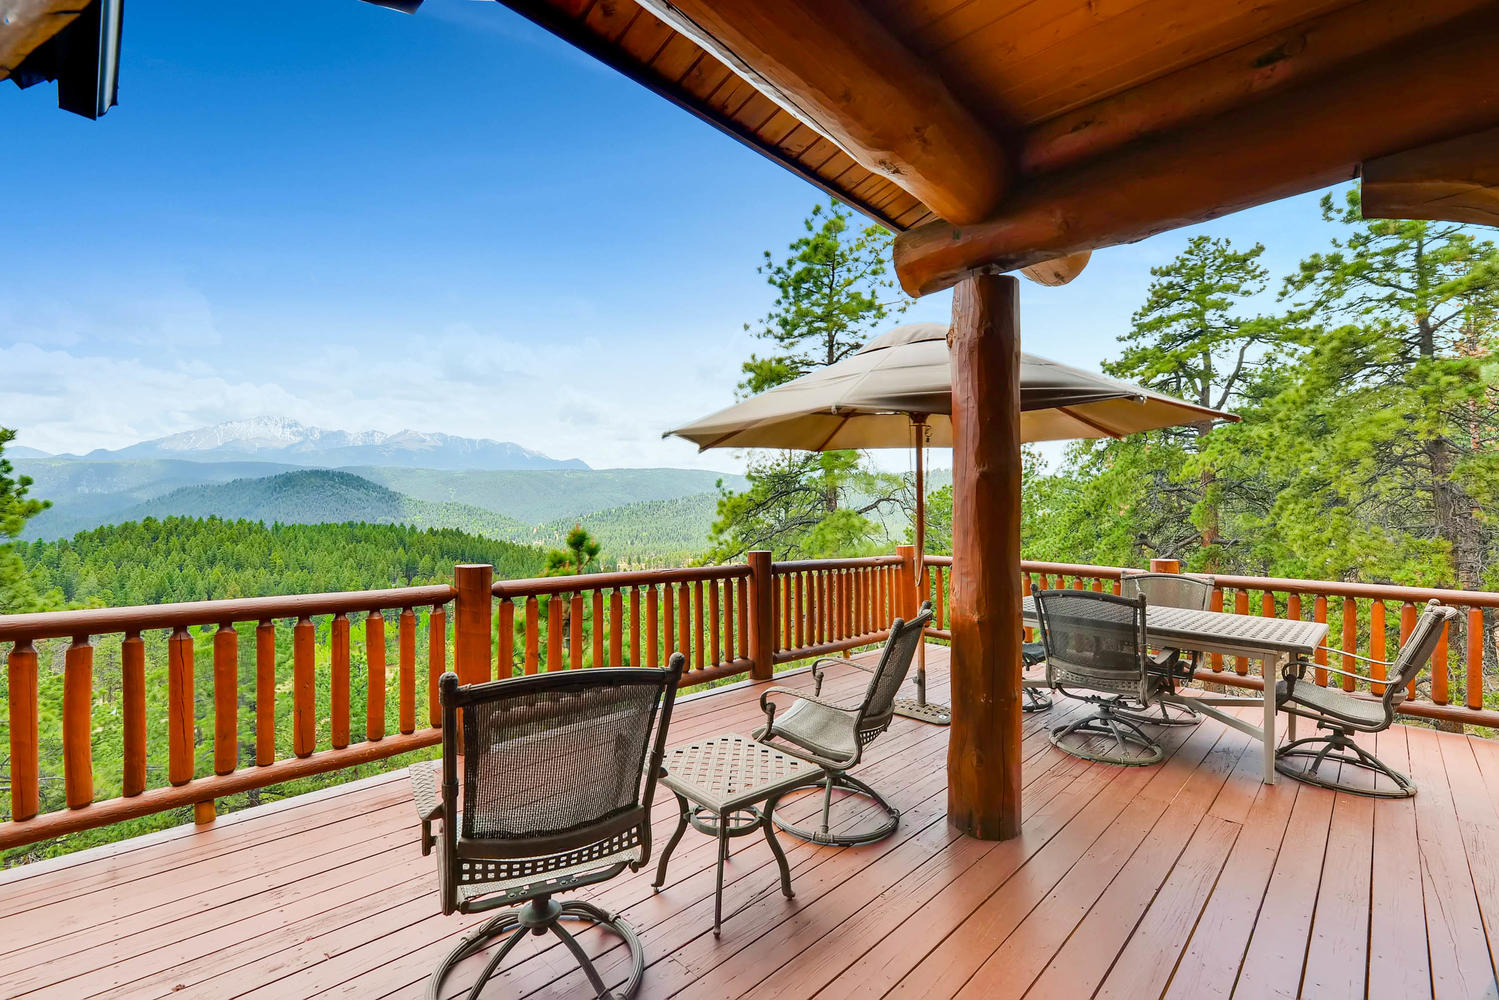 The upper level deck may be where you spend your entire trip!